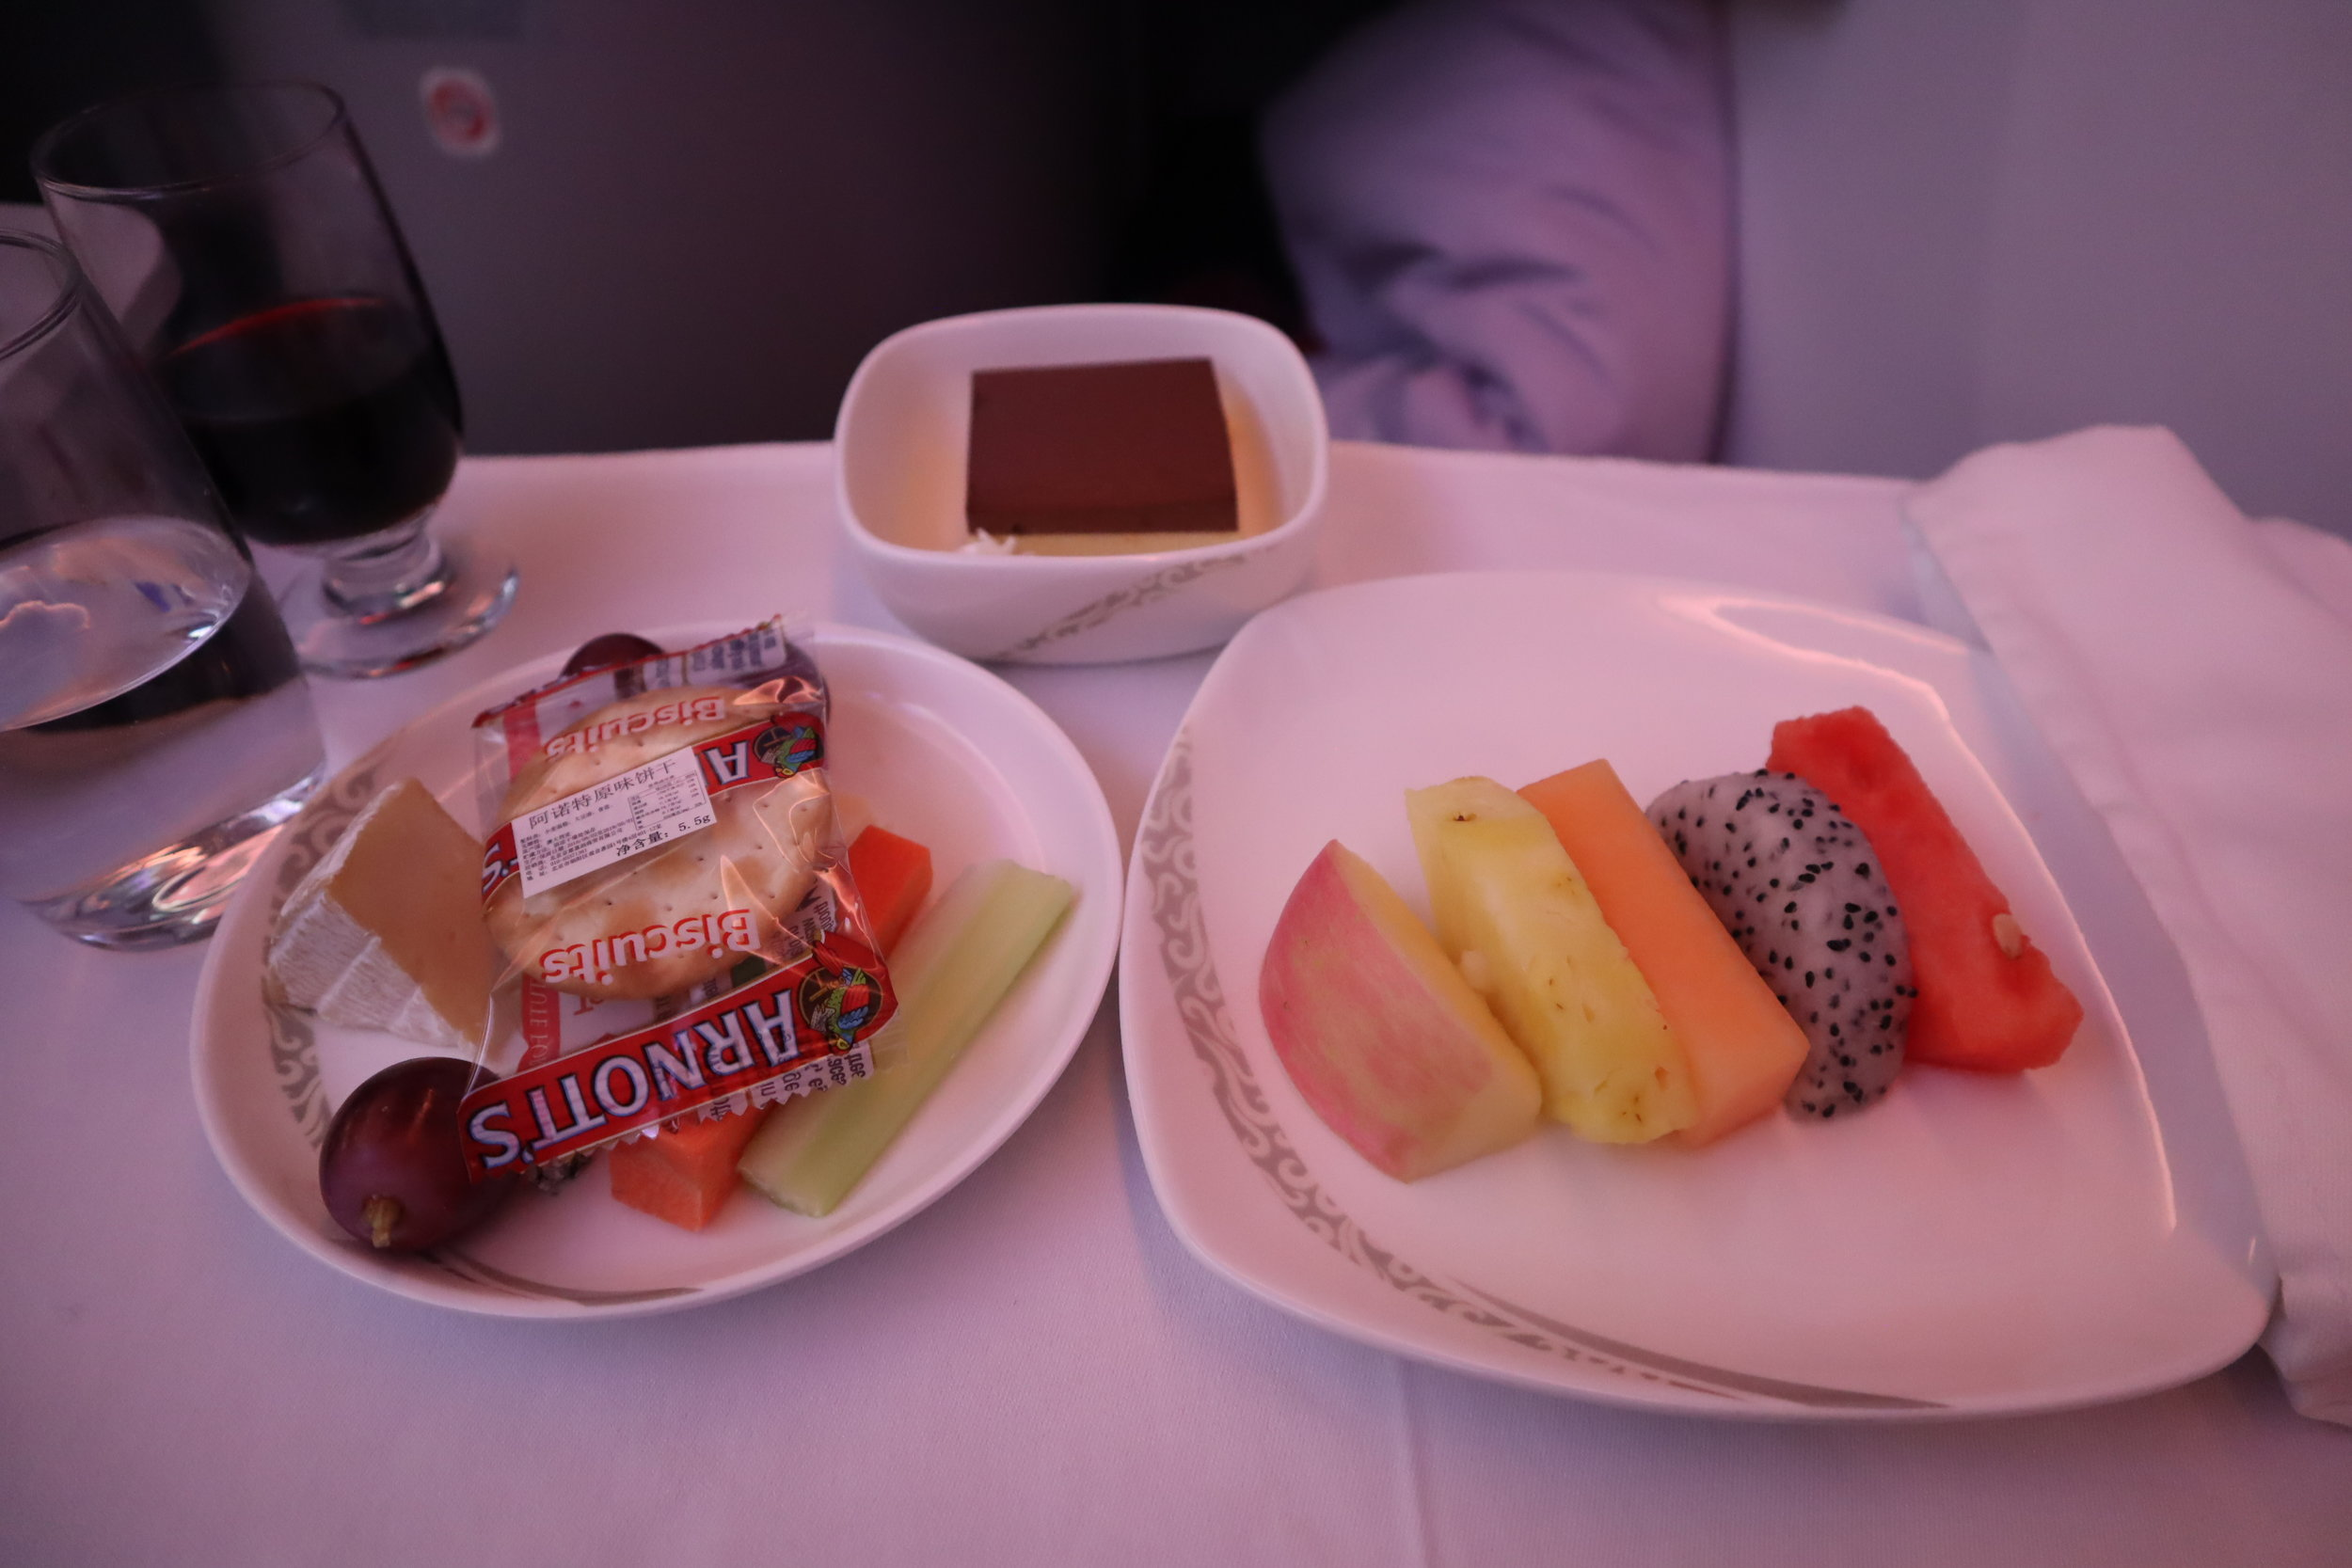 Air China business class – Dessert, cheese, and fruit